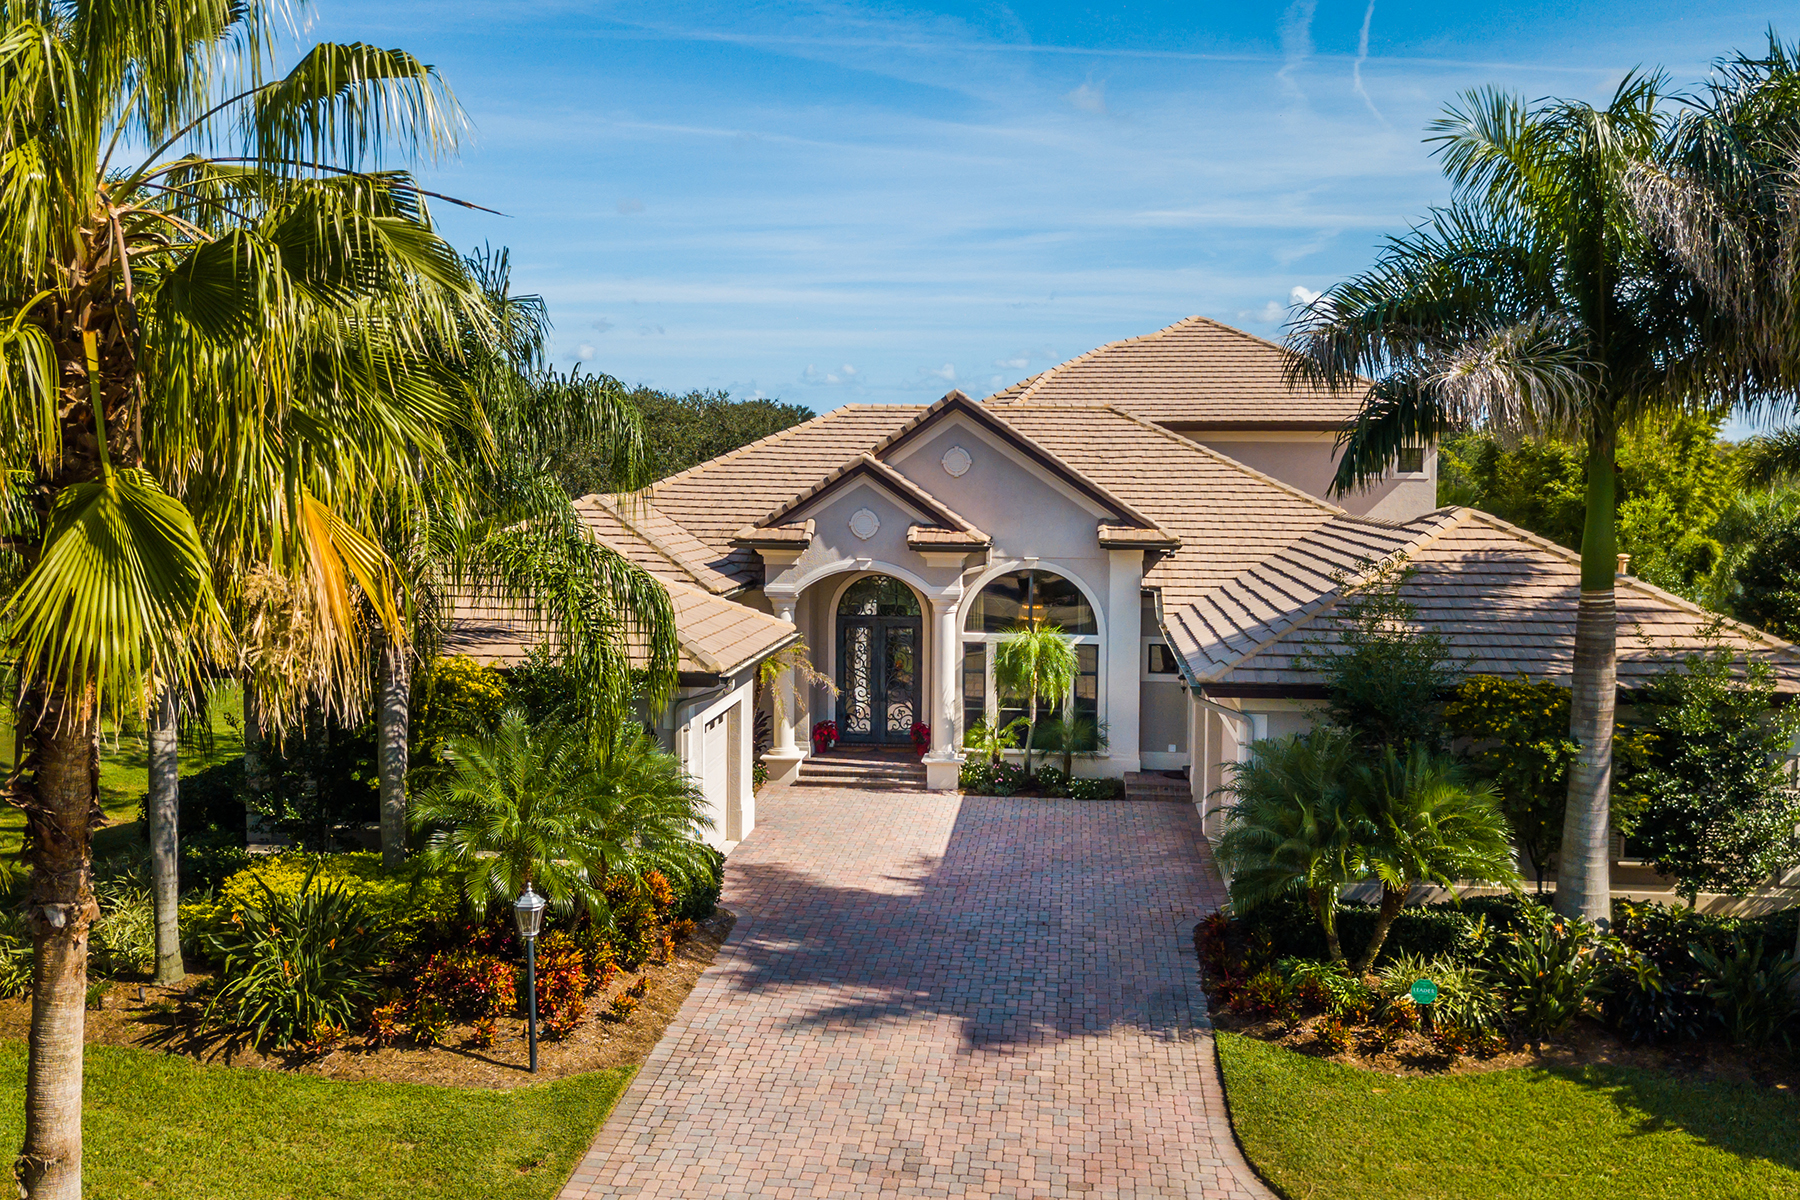 Single Family Homes for Active at LAKEWOOD RANCH COUNTRY CLUB 13662 Legends Walk Ter Lakewood Ranch, Florida 34202 United States